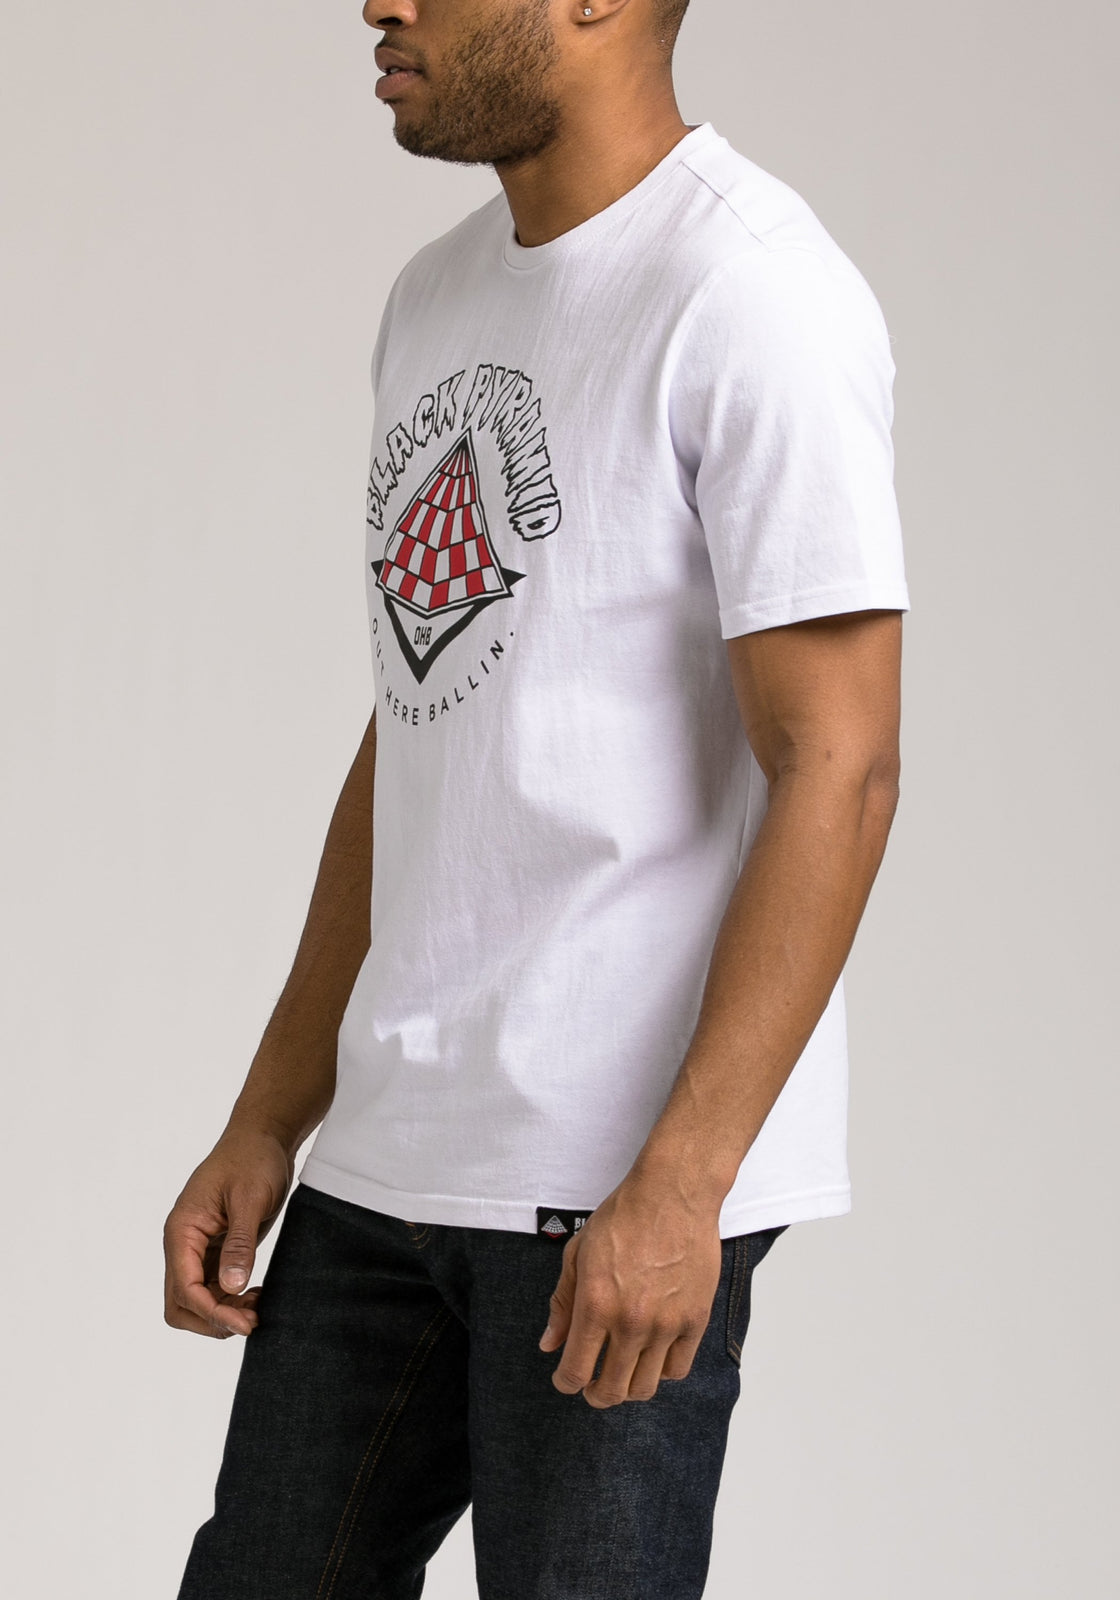 OHB SS SHIRT - Color: White